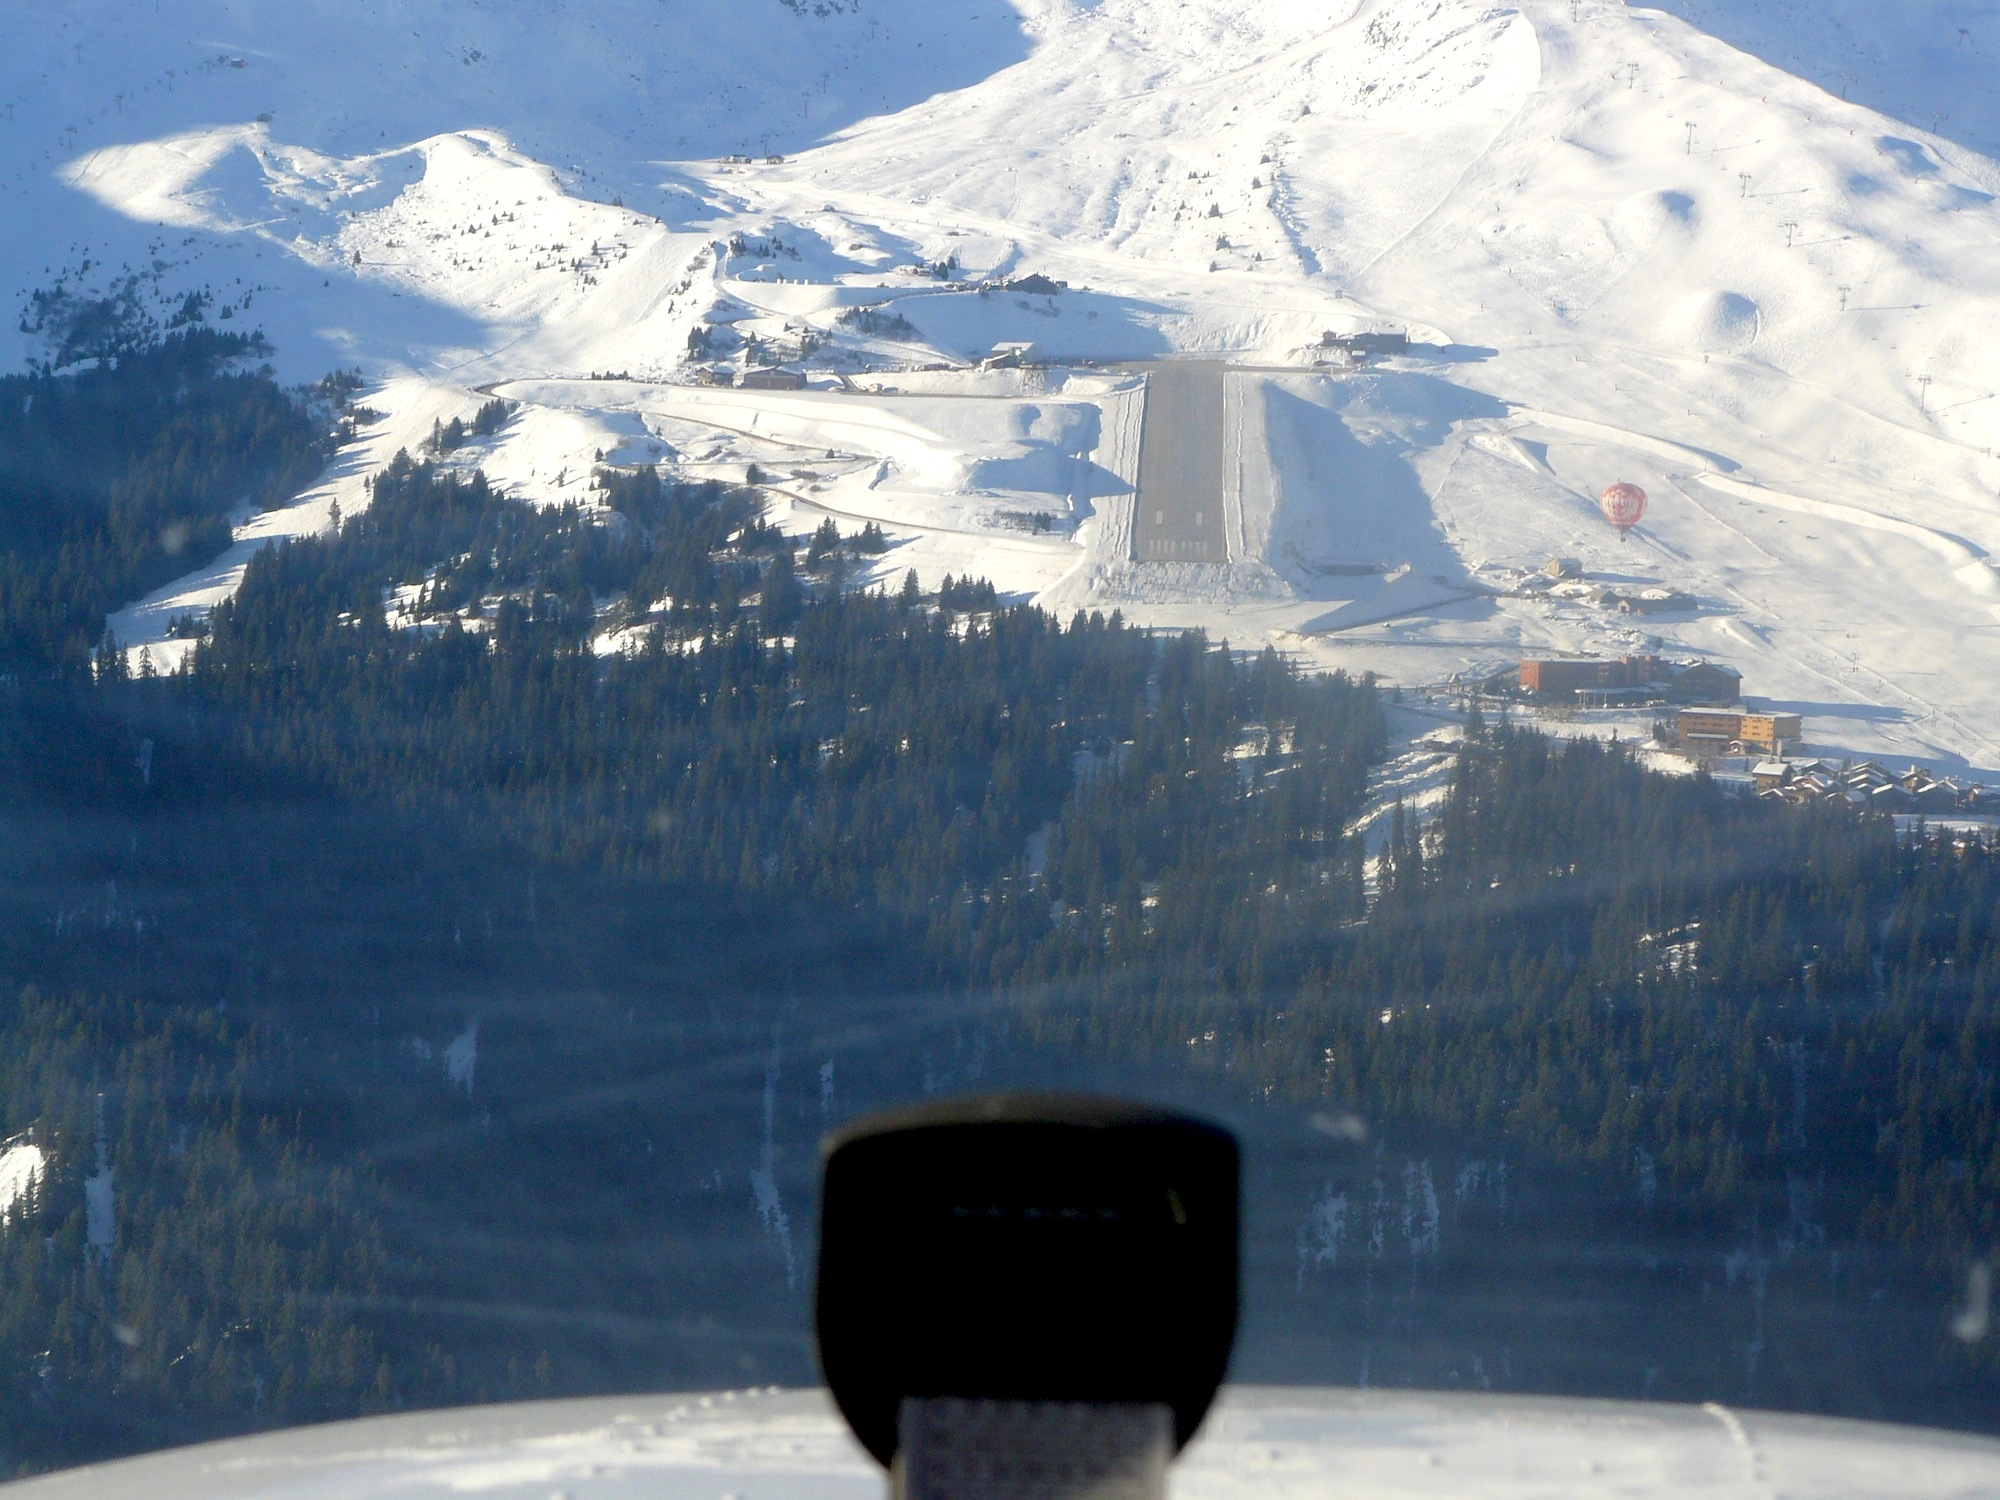 Aéroport de Courchevel, France